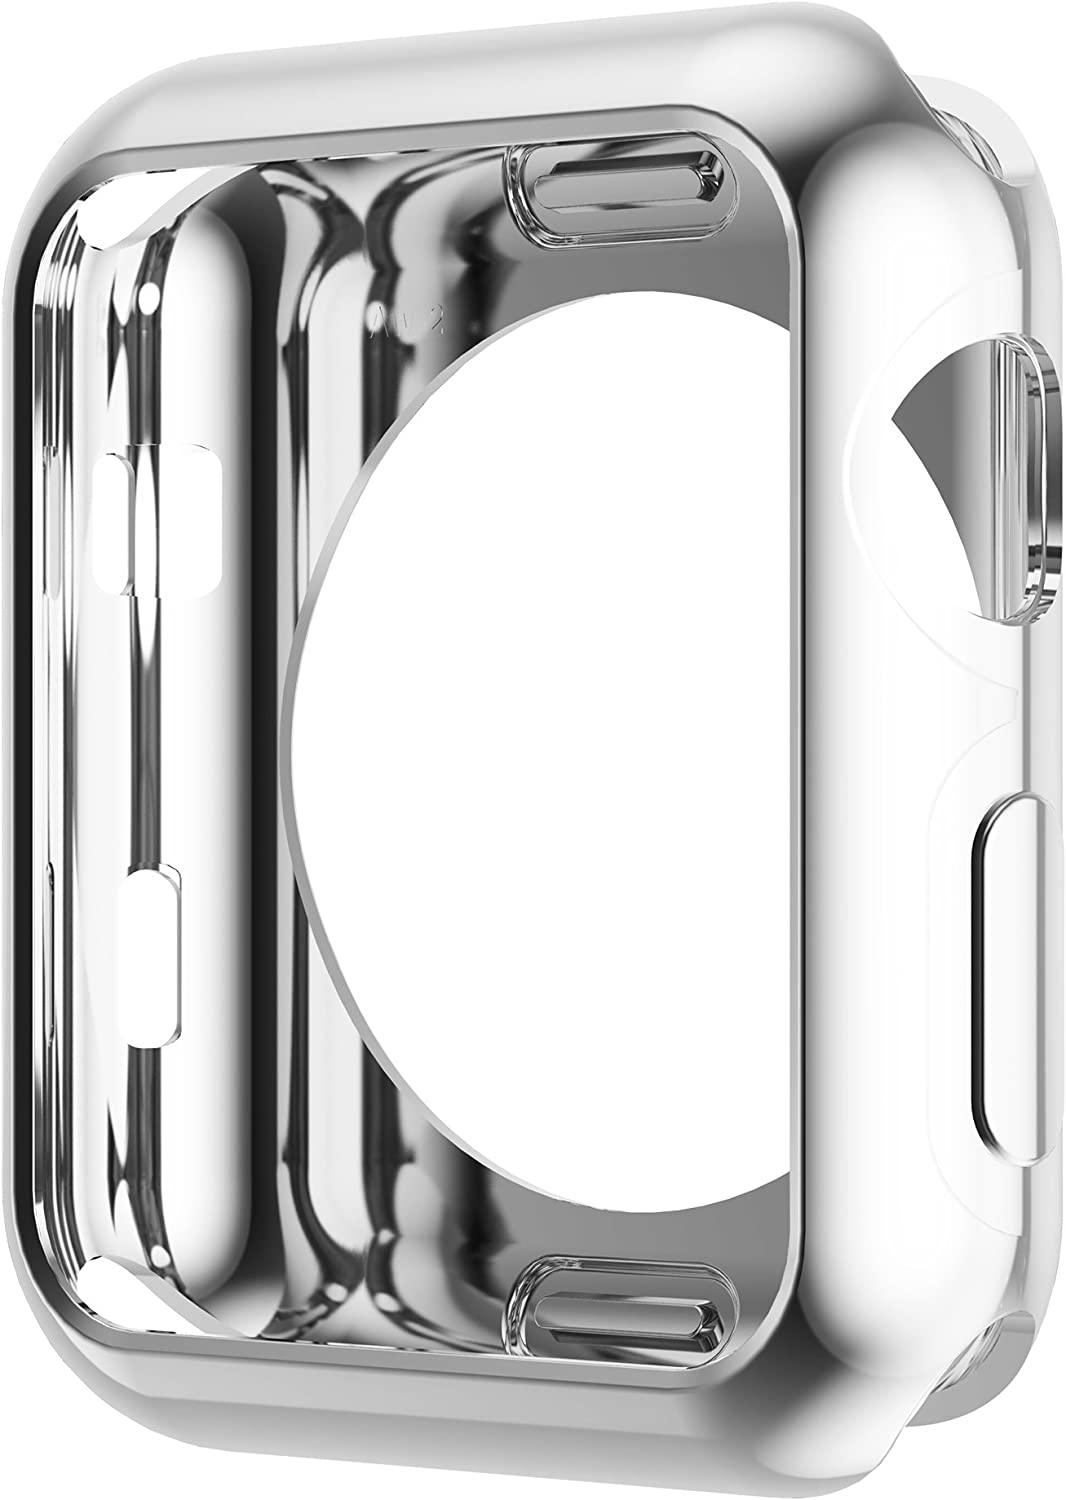 Leotop Compatible with Apple Watch Case 44mm 40mm, Soft Flexible TPU Plated Protector Bumper Shiny Cover Lightweight Thin Guard Shockproof Frame Compatible for iWatch Series 6 5 4 SE (Silver, 44mm)